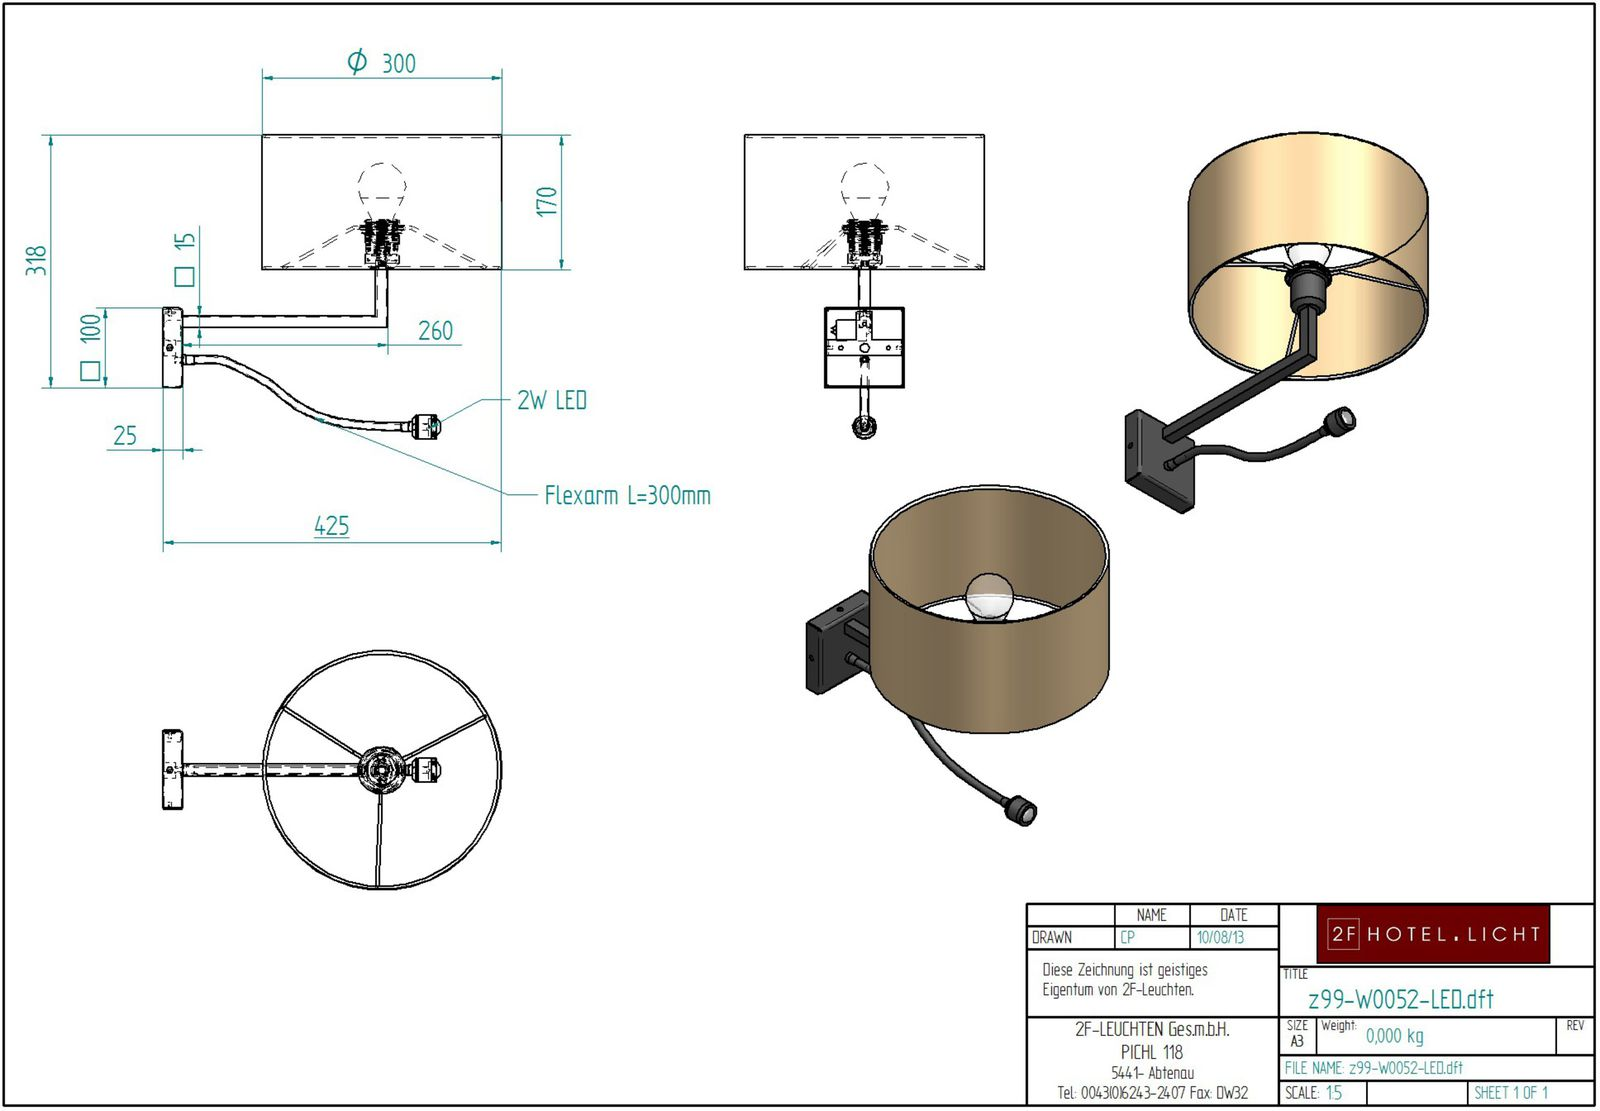 wall lamp 1 flg., height=320mm, length=550mm, wide=100mm, surface: softblack coated, technical details: 1xE27, 60W